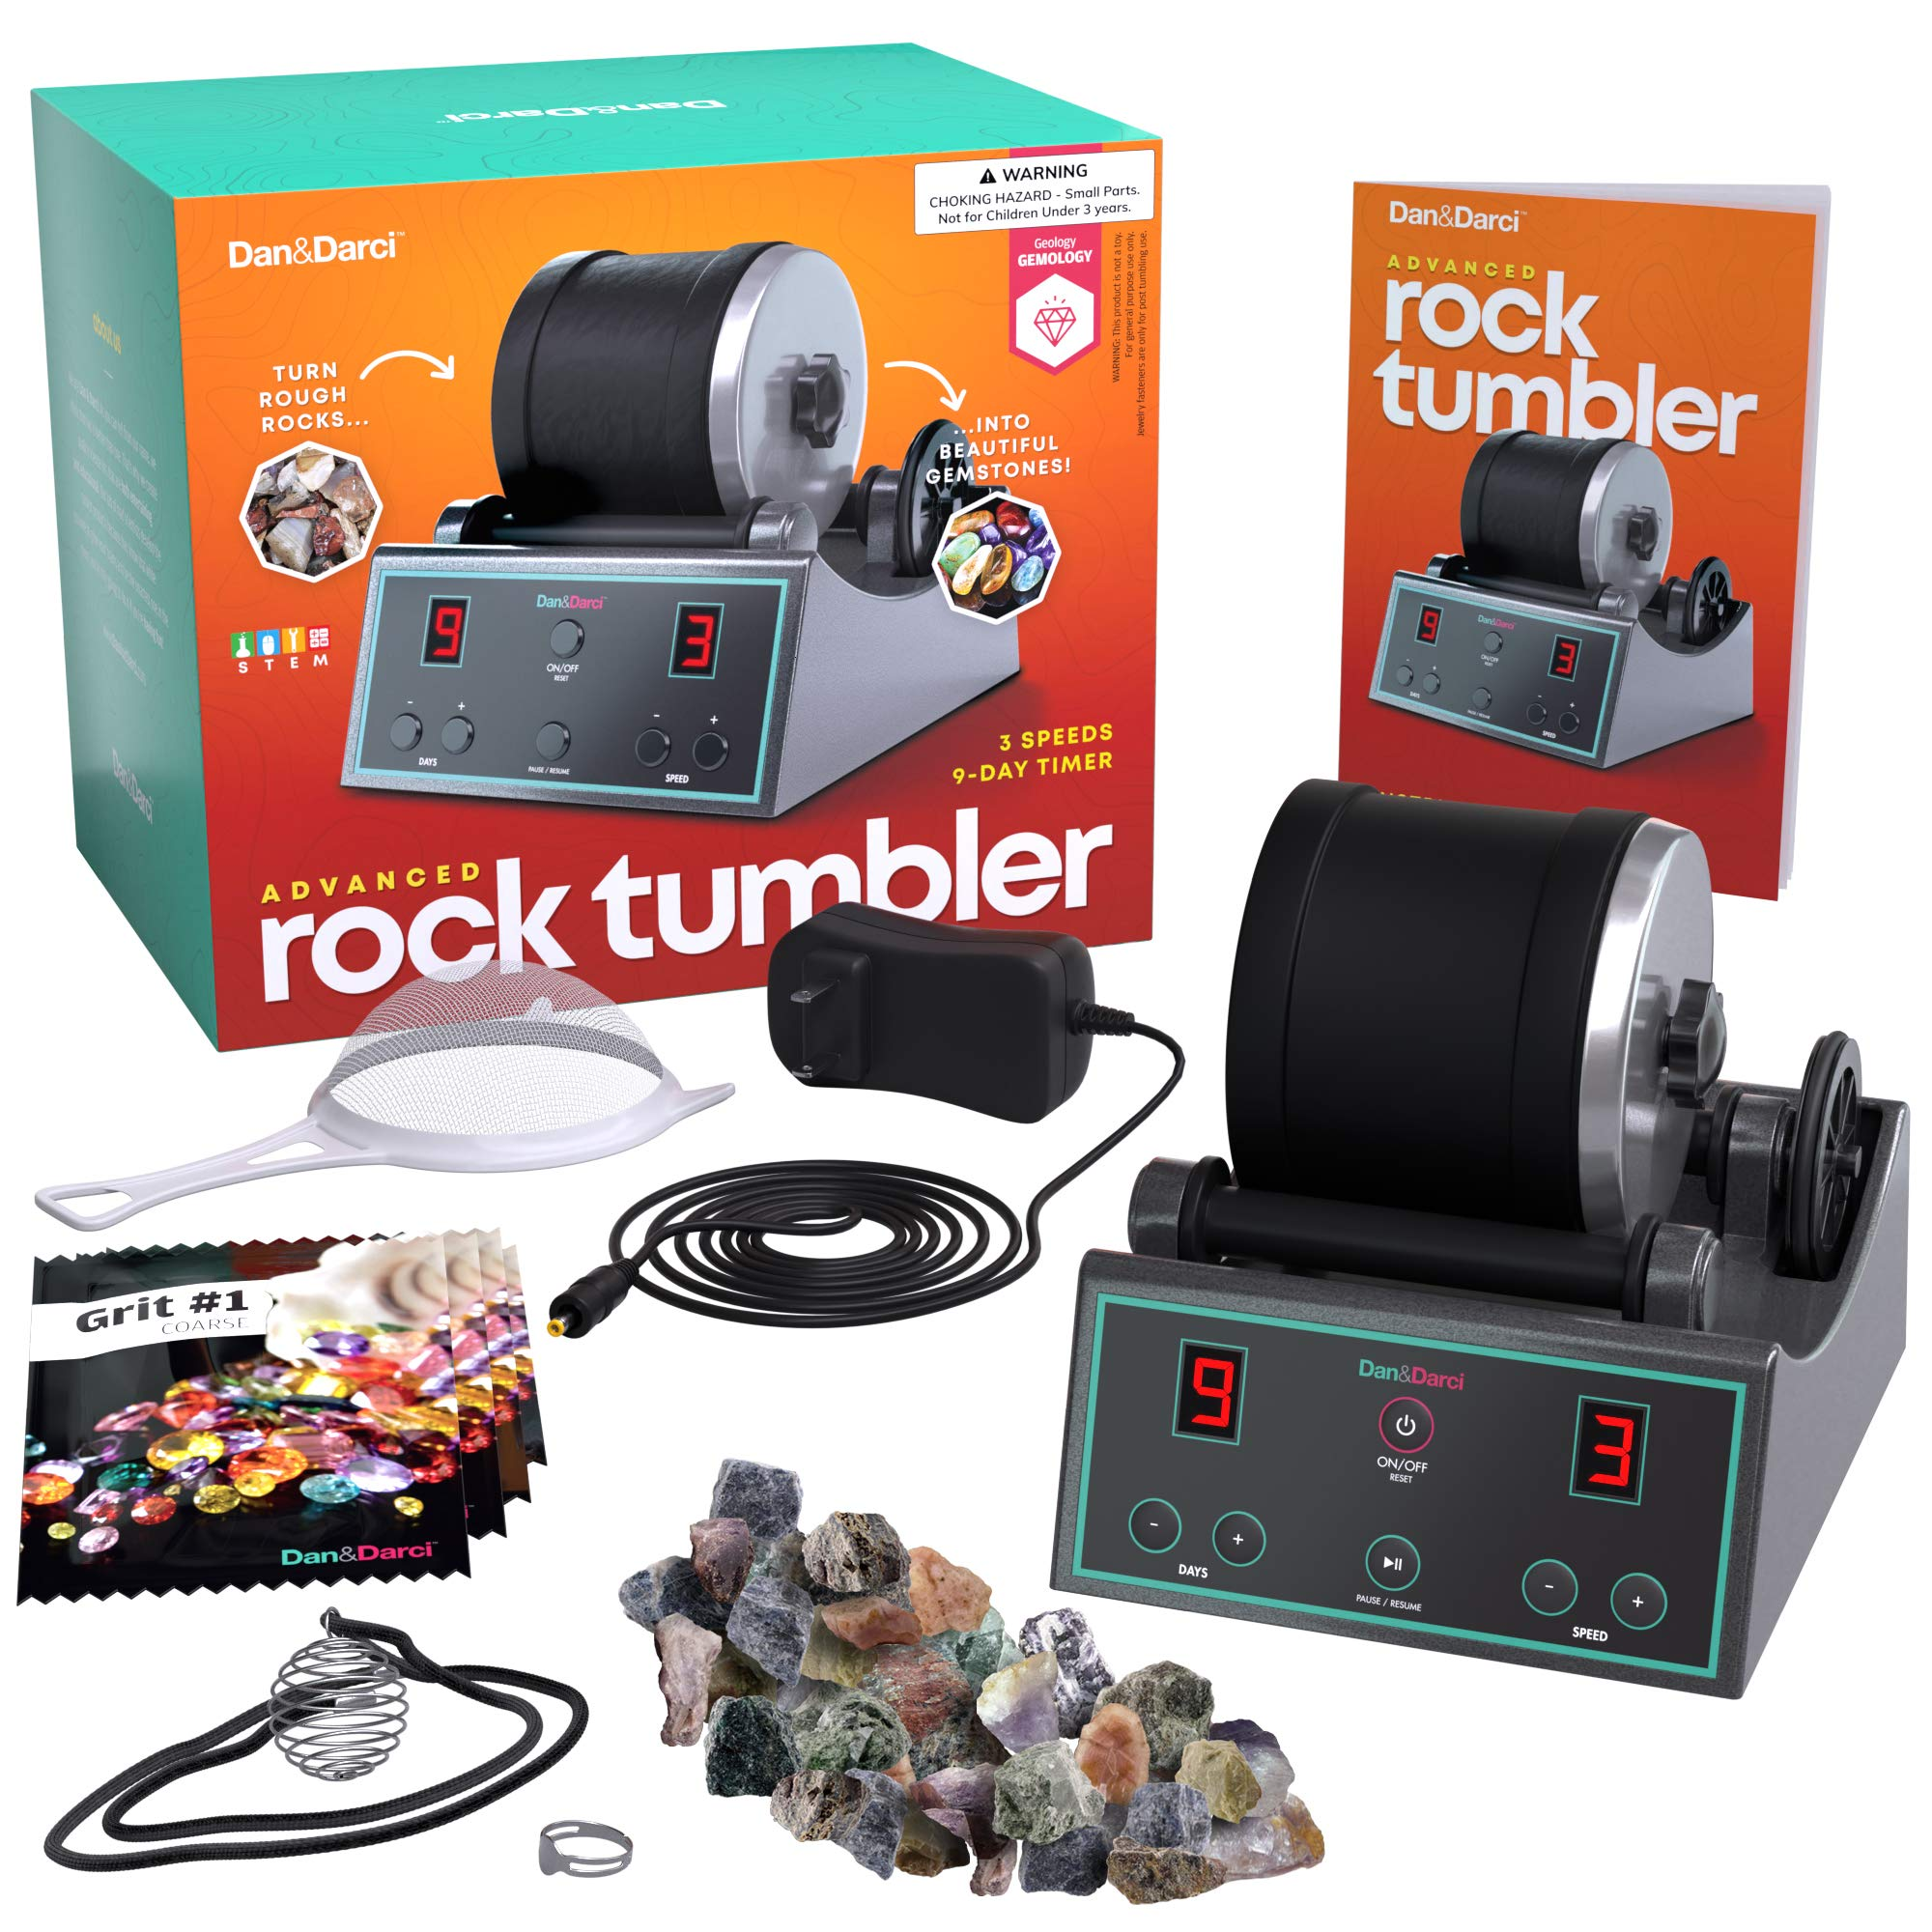 Advanced Professional Rock Tumbler Kit - with Digital 9-day timer and 3-speed settings - Turn Rough Rocks into Beautiful Gems | Great Science Kit & STEM Gift for all ages | Study Geology & Mineralogy